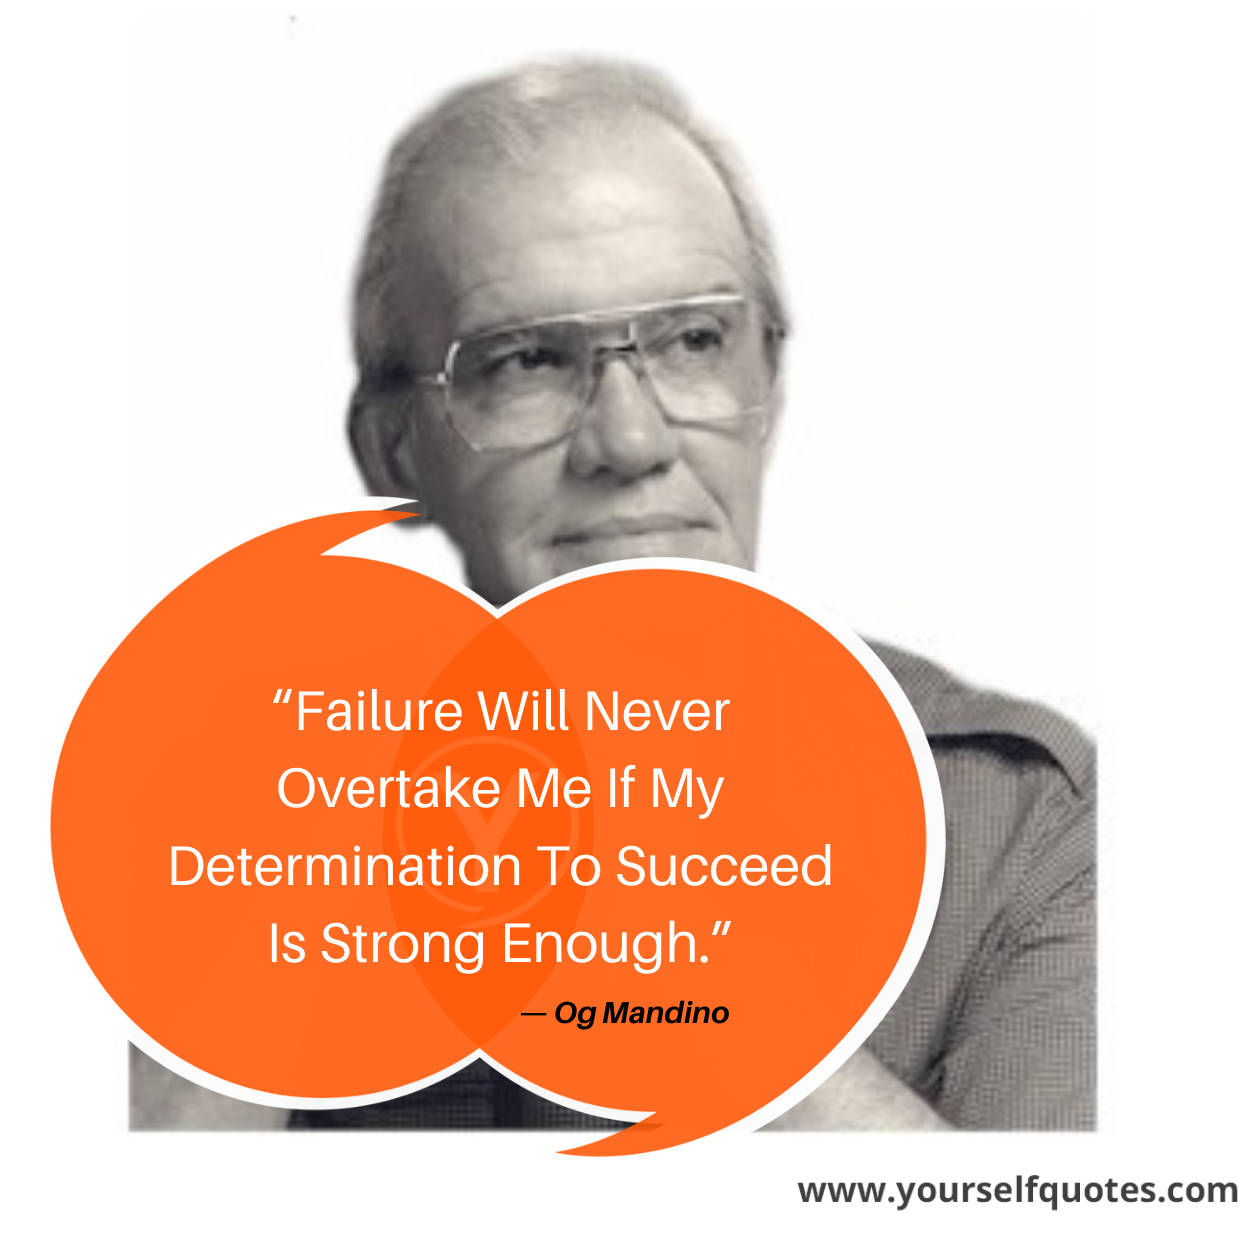 Word of Wisdom Quotes Images by Og Mandino